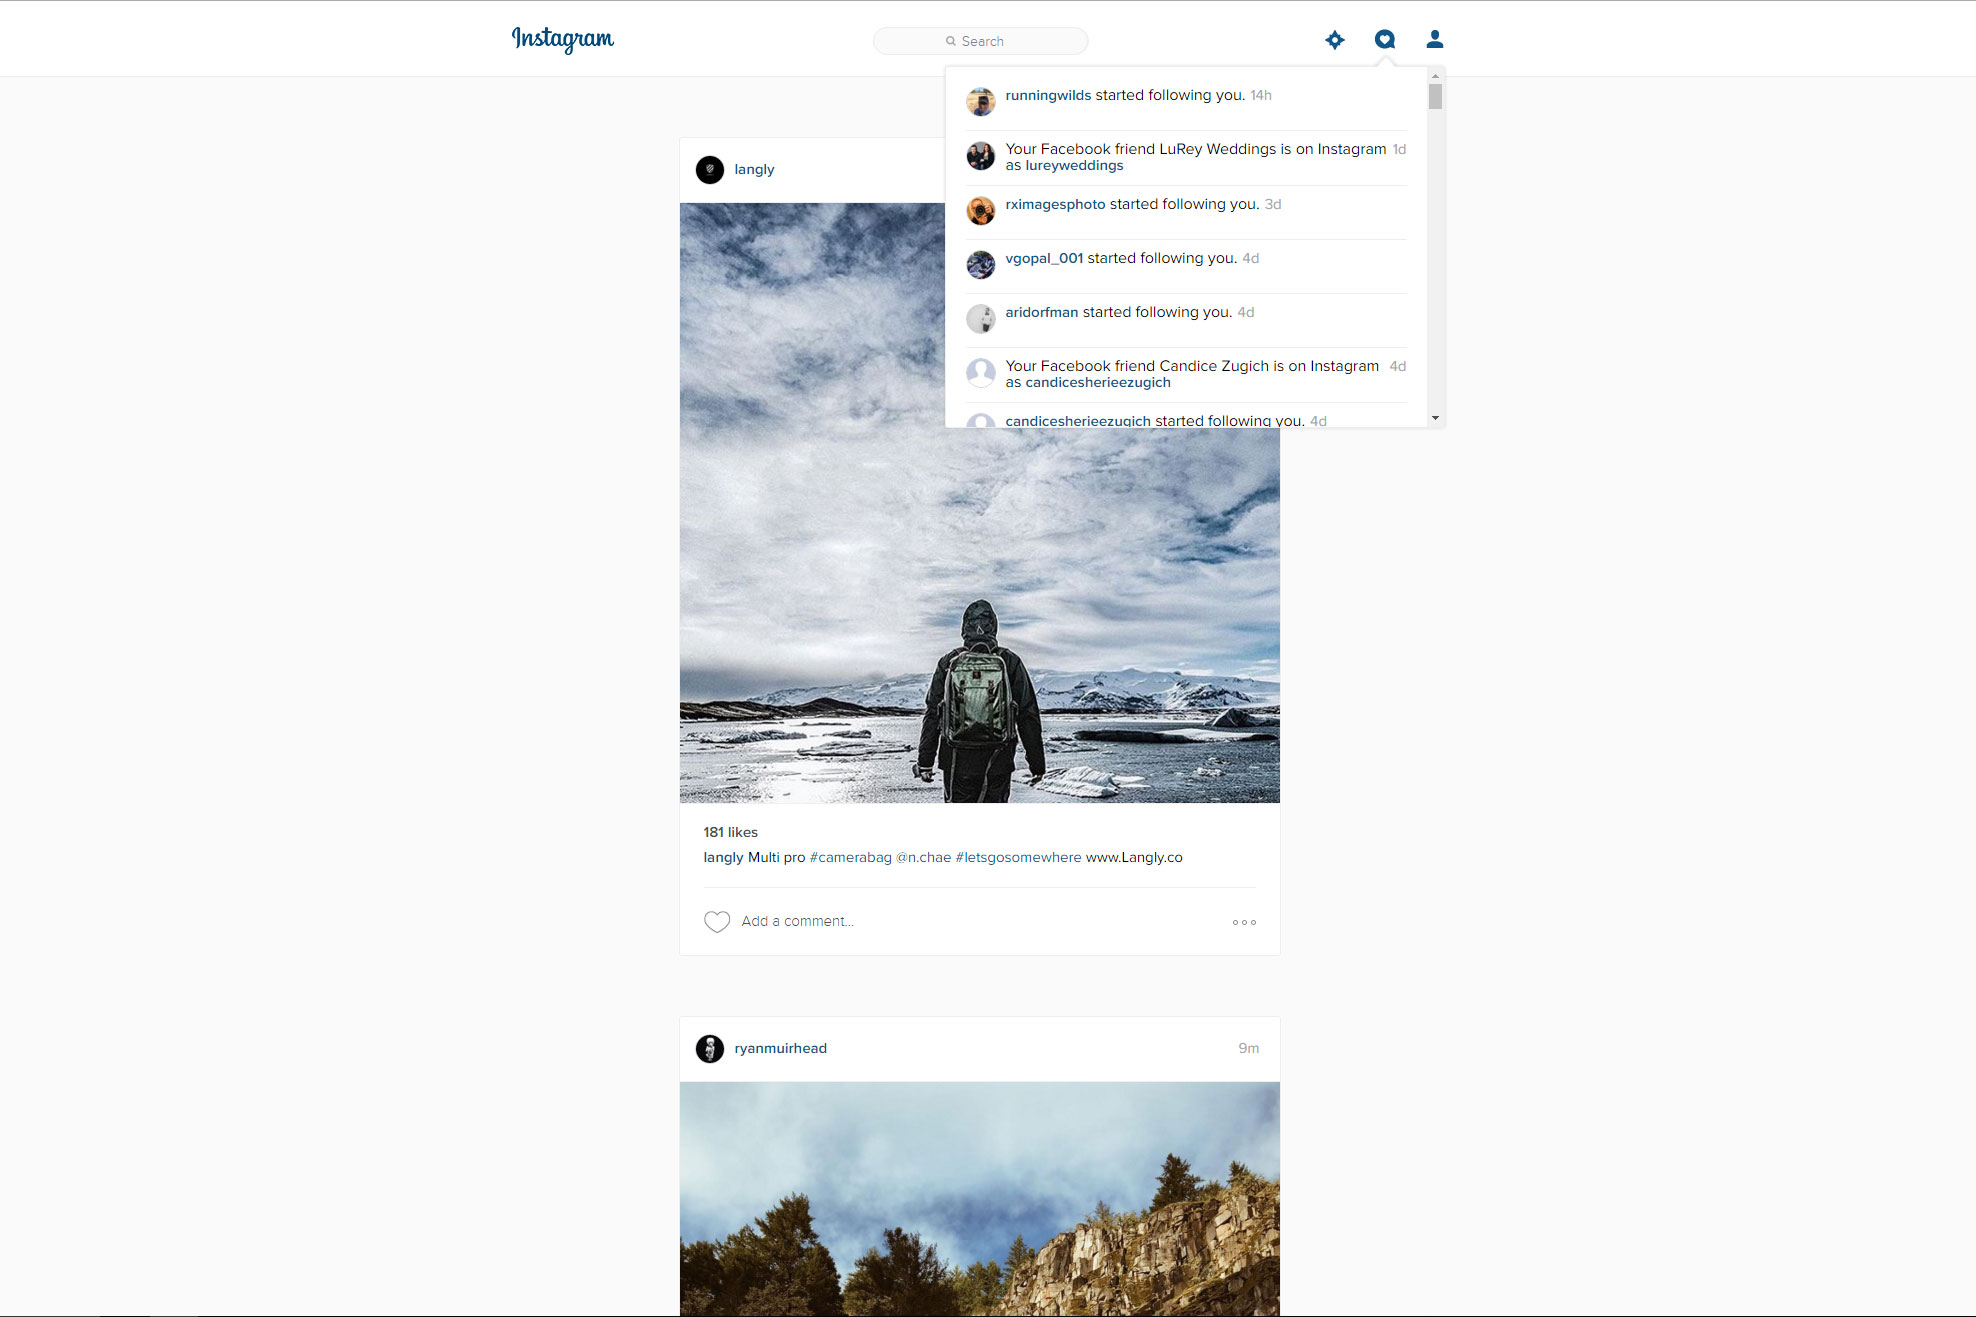 Instagram Notifications Meme Goes Viral Despite Being Inaccurate